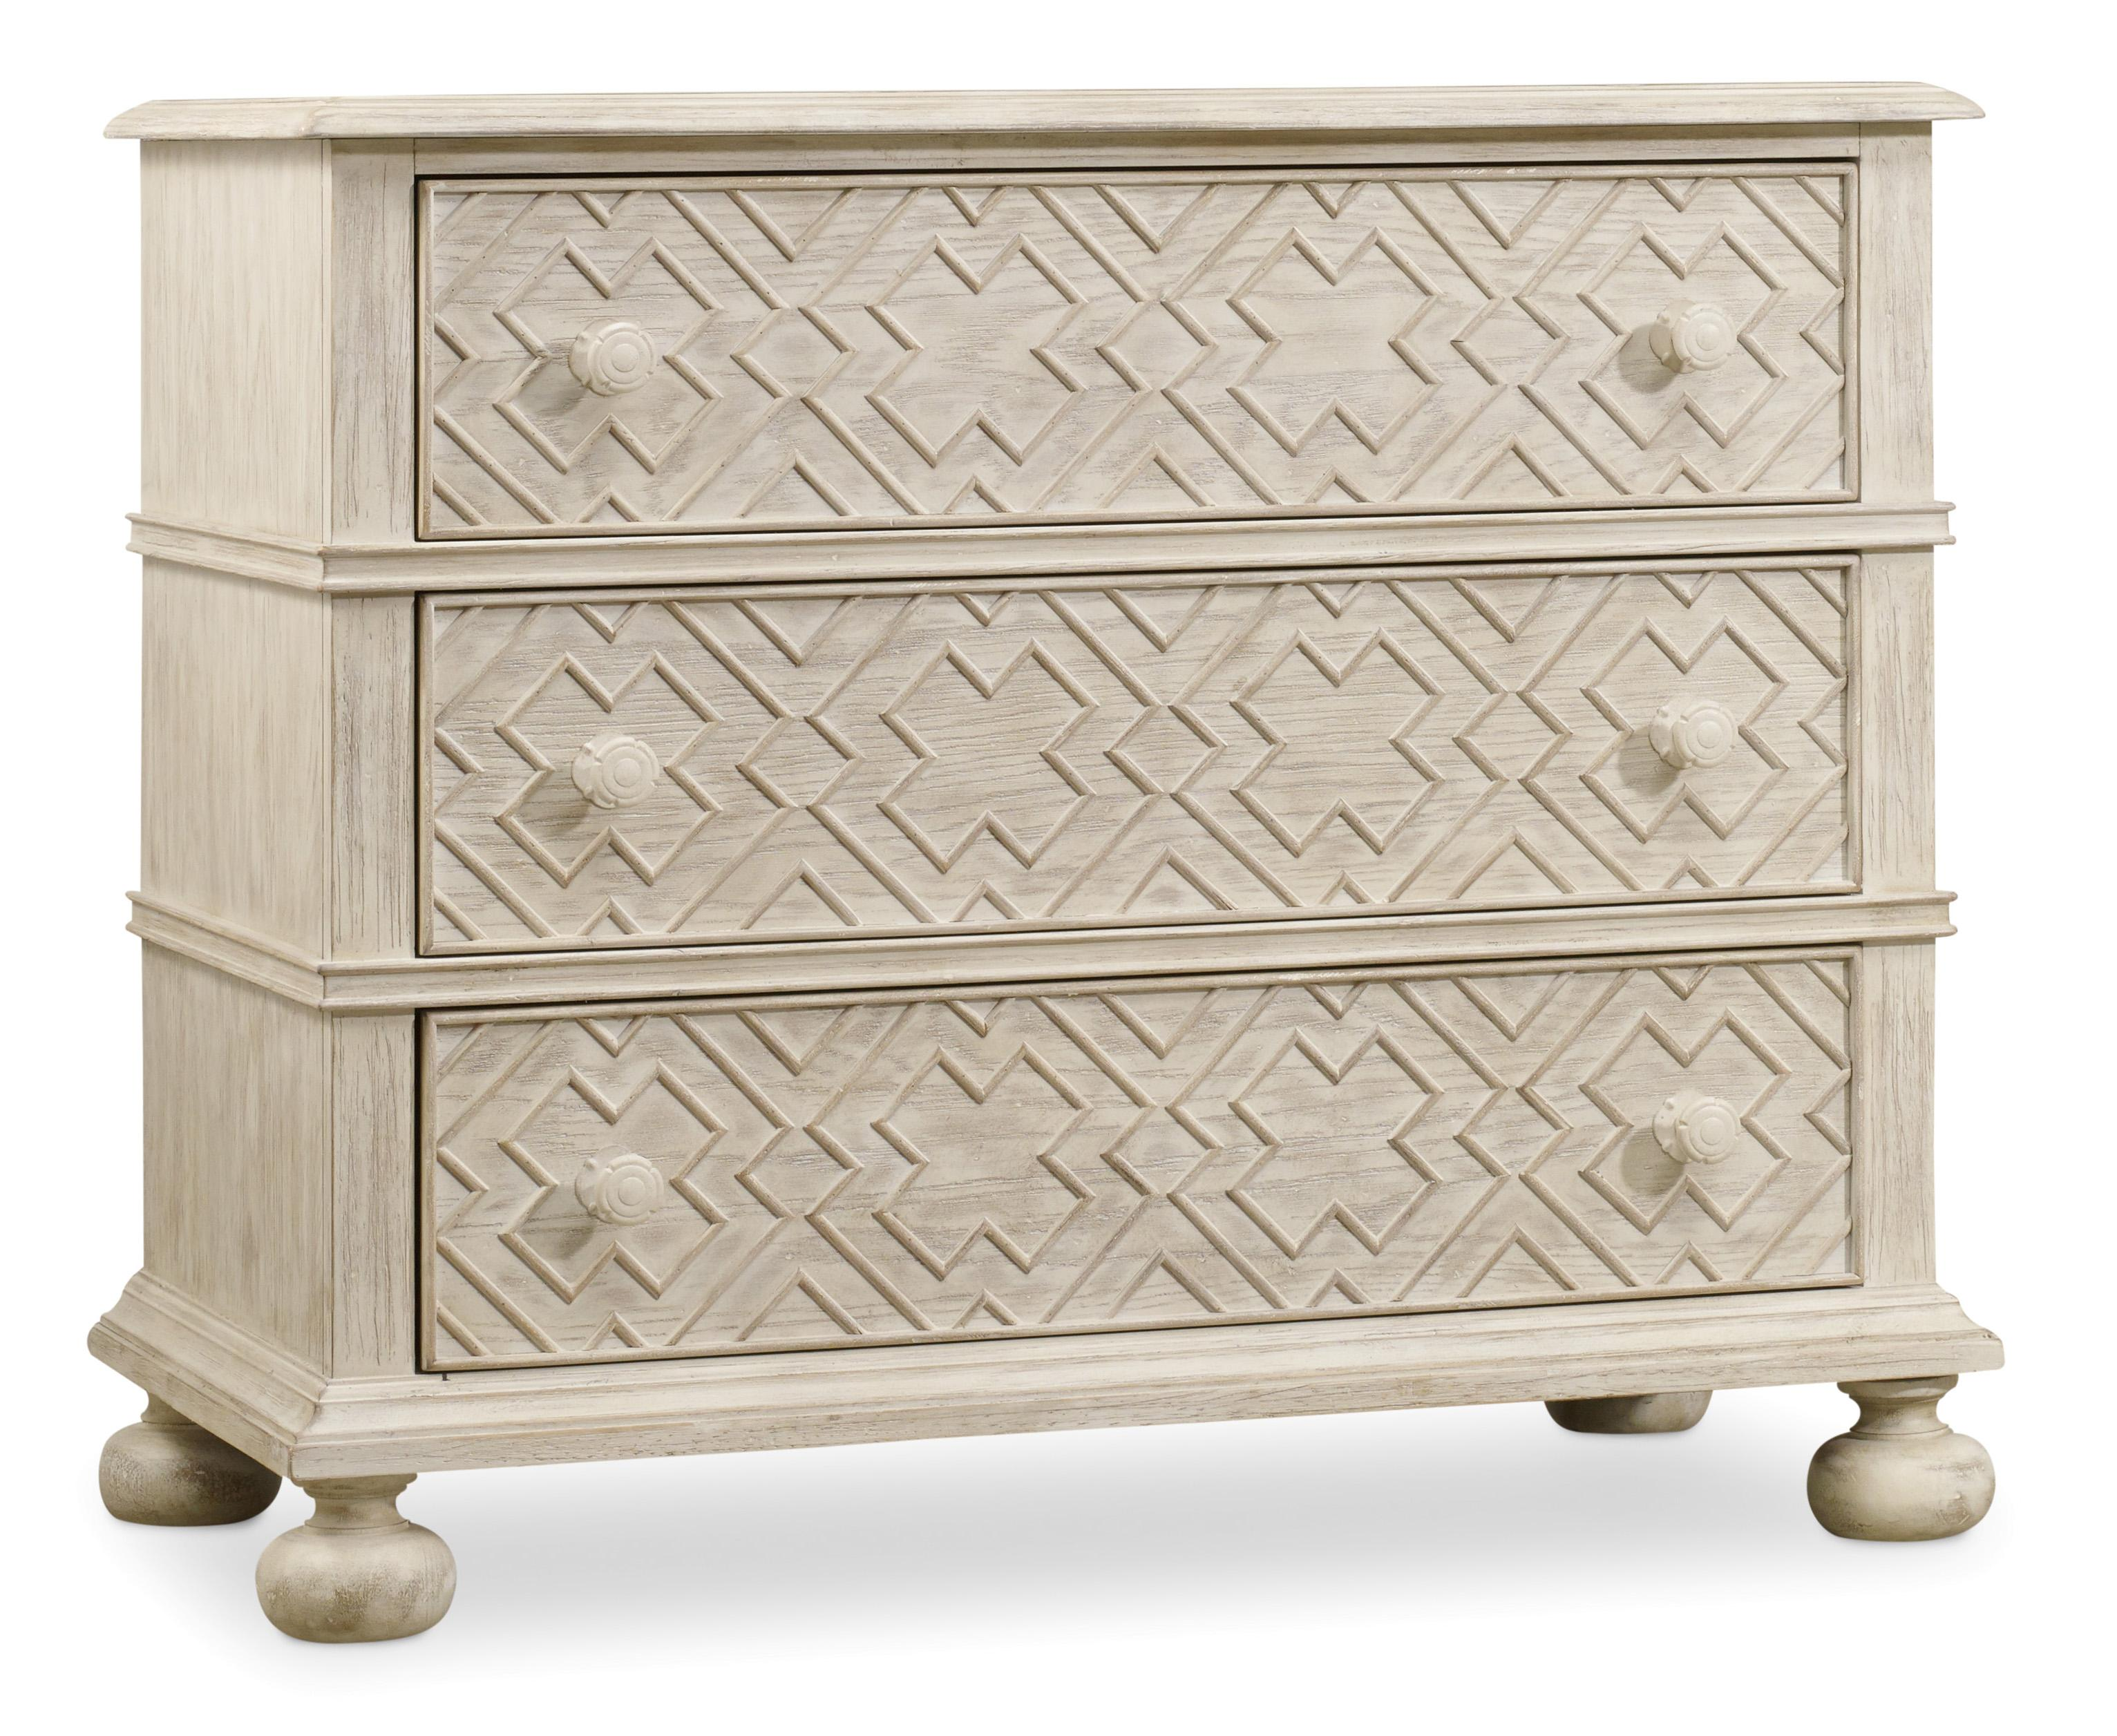 Hooker Furniture Sunset Point 3 Drawer Bachelor's Chest - Item Number: 5325-90017